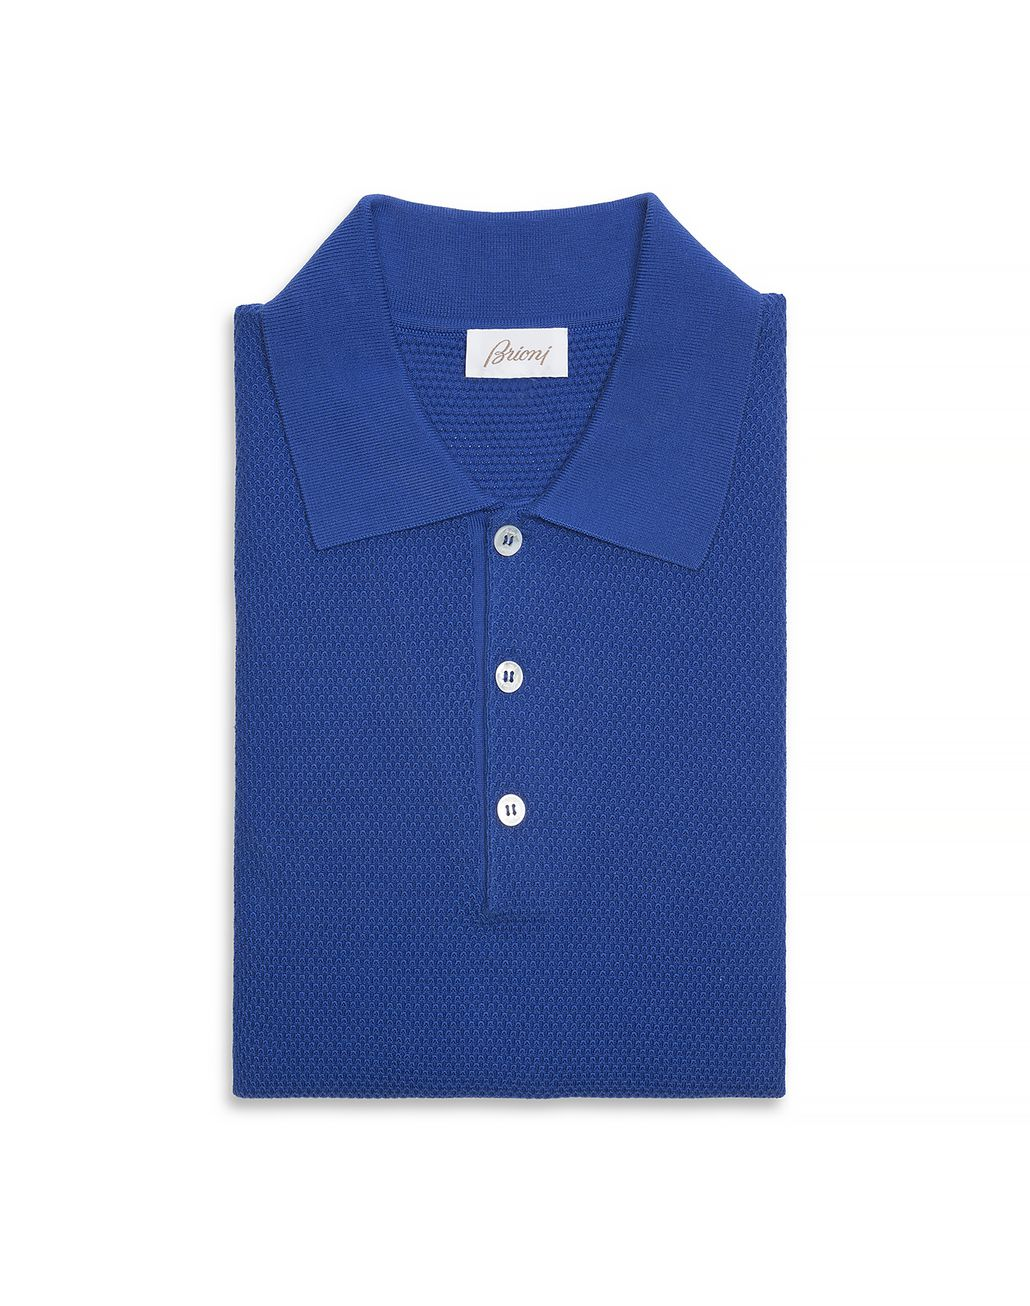 BRIONI Bluette Three Button Polo Shirt T-Shirts & Polos Man f